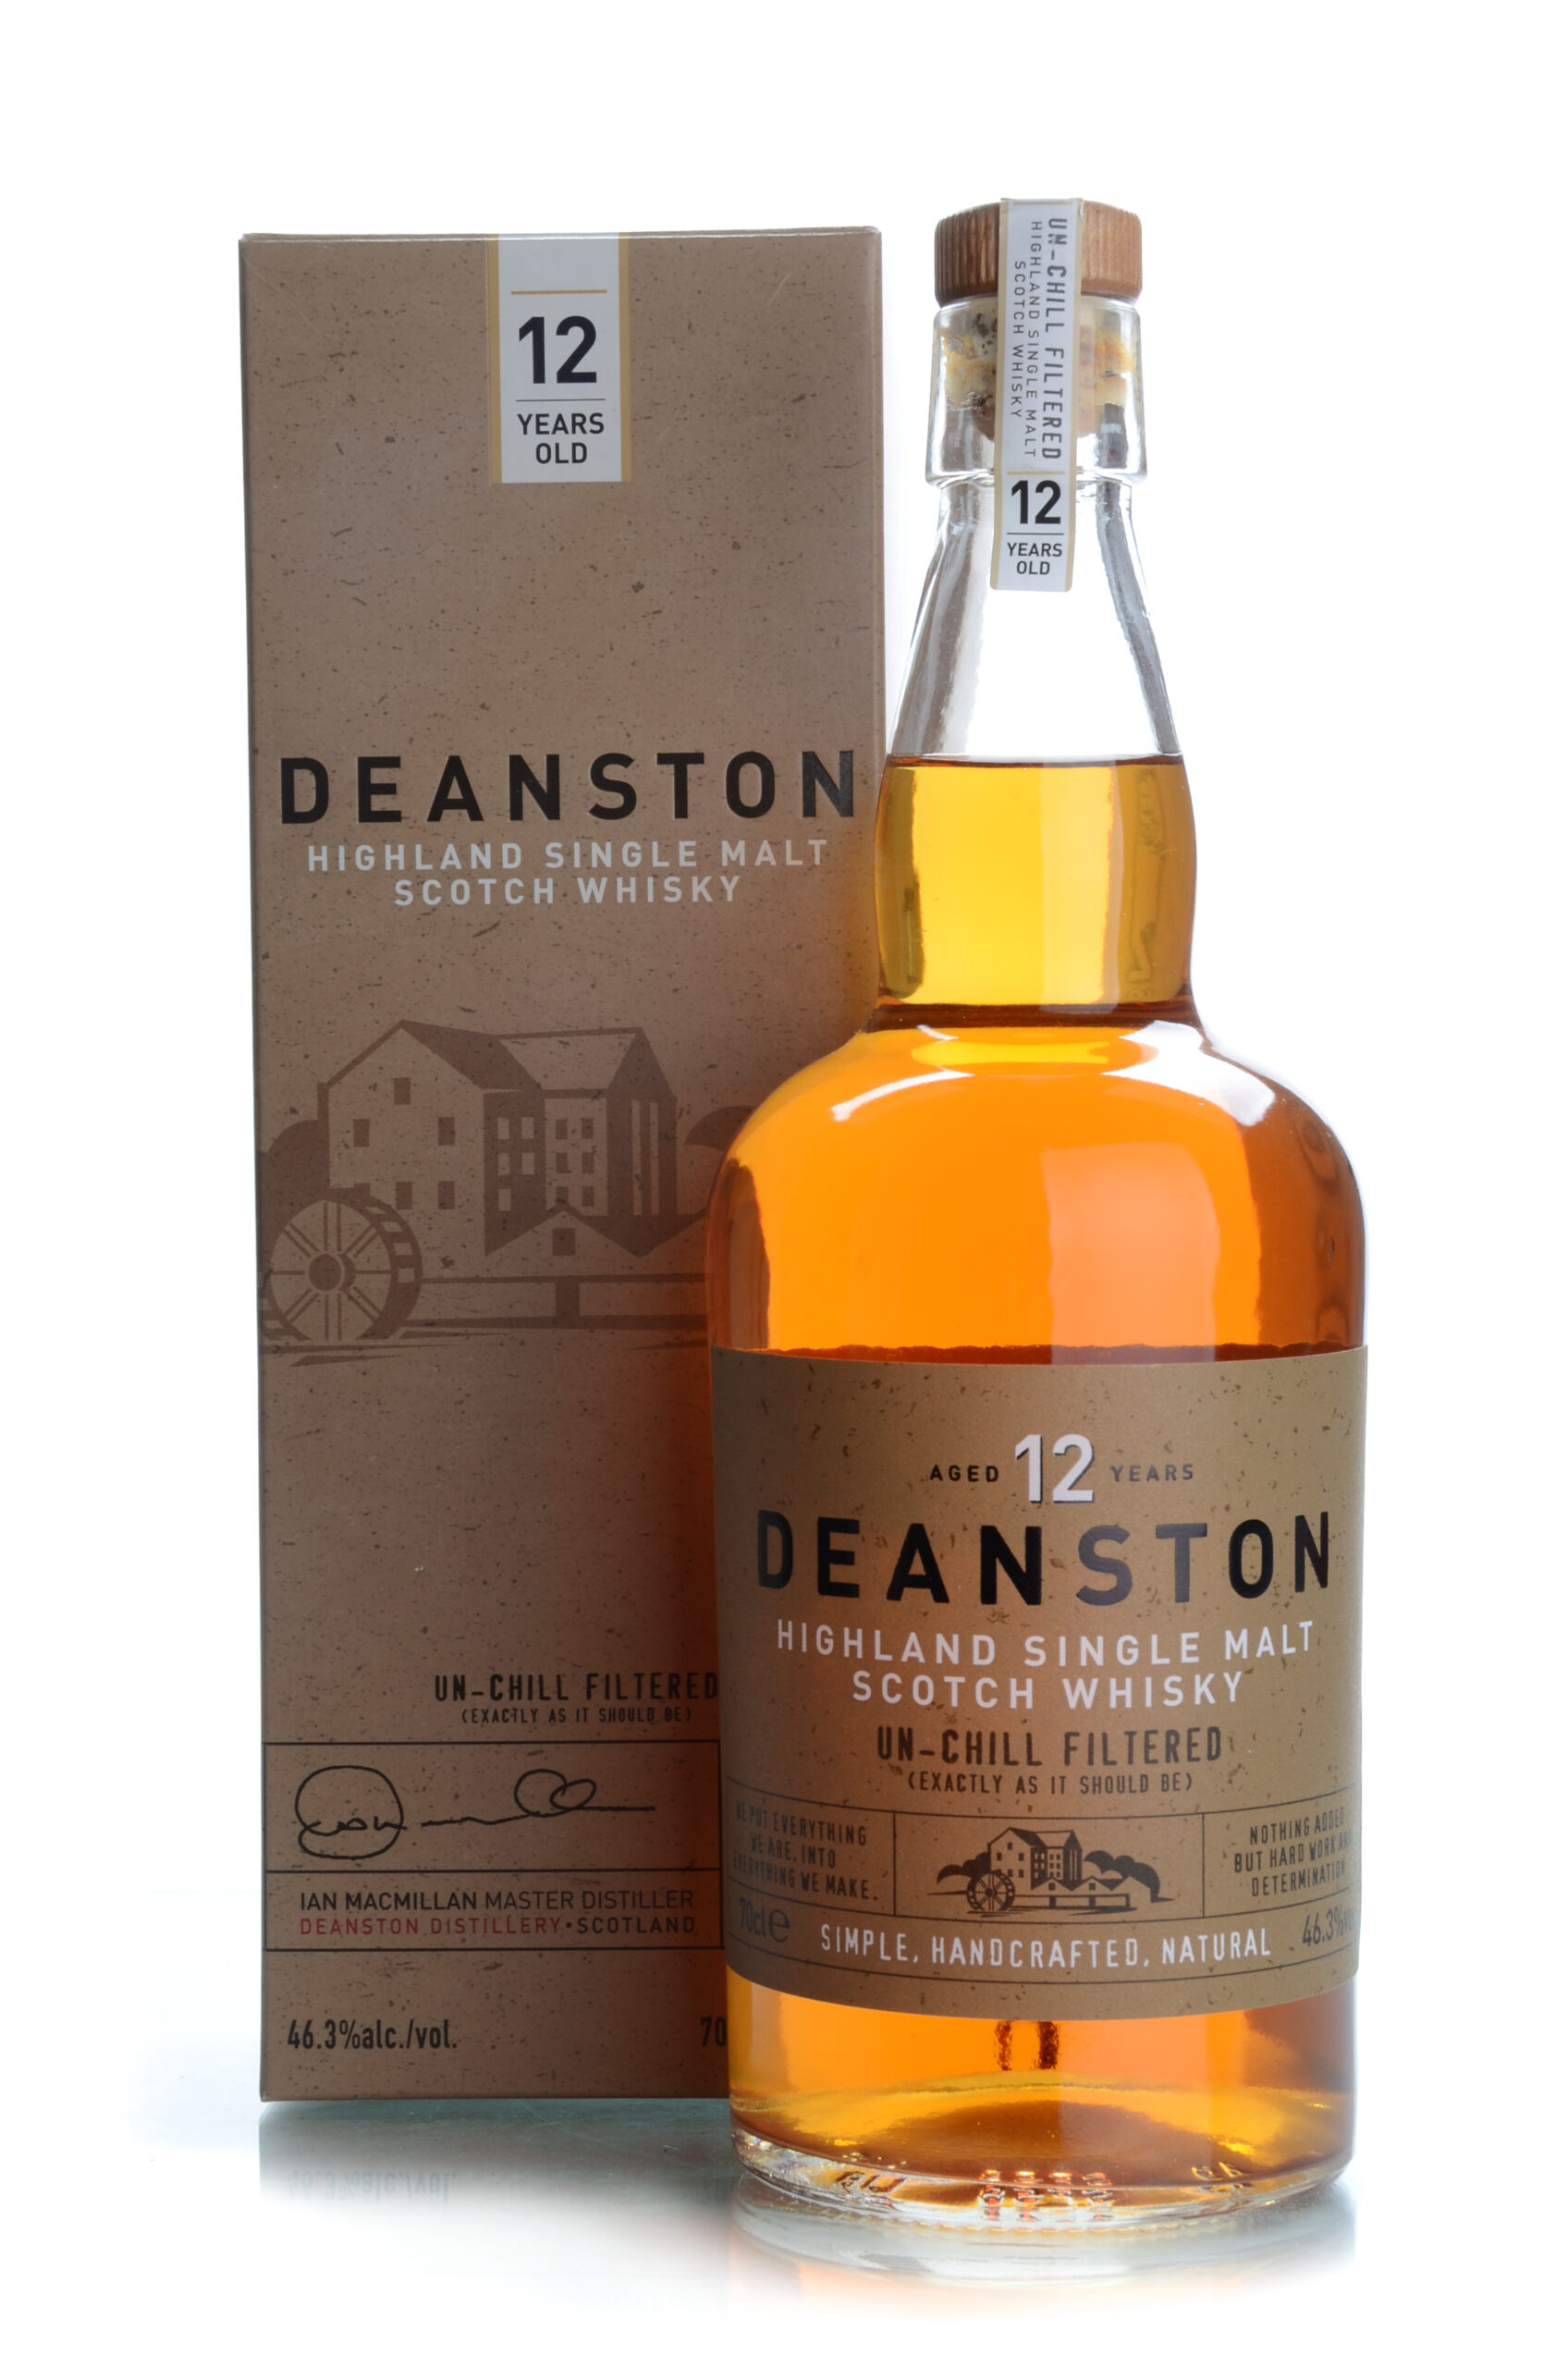 Deanston 12 years unchillfiltered